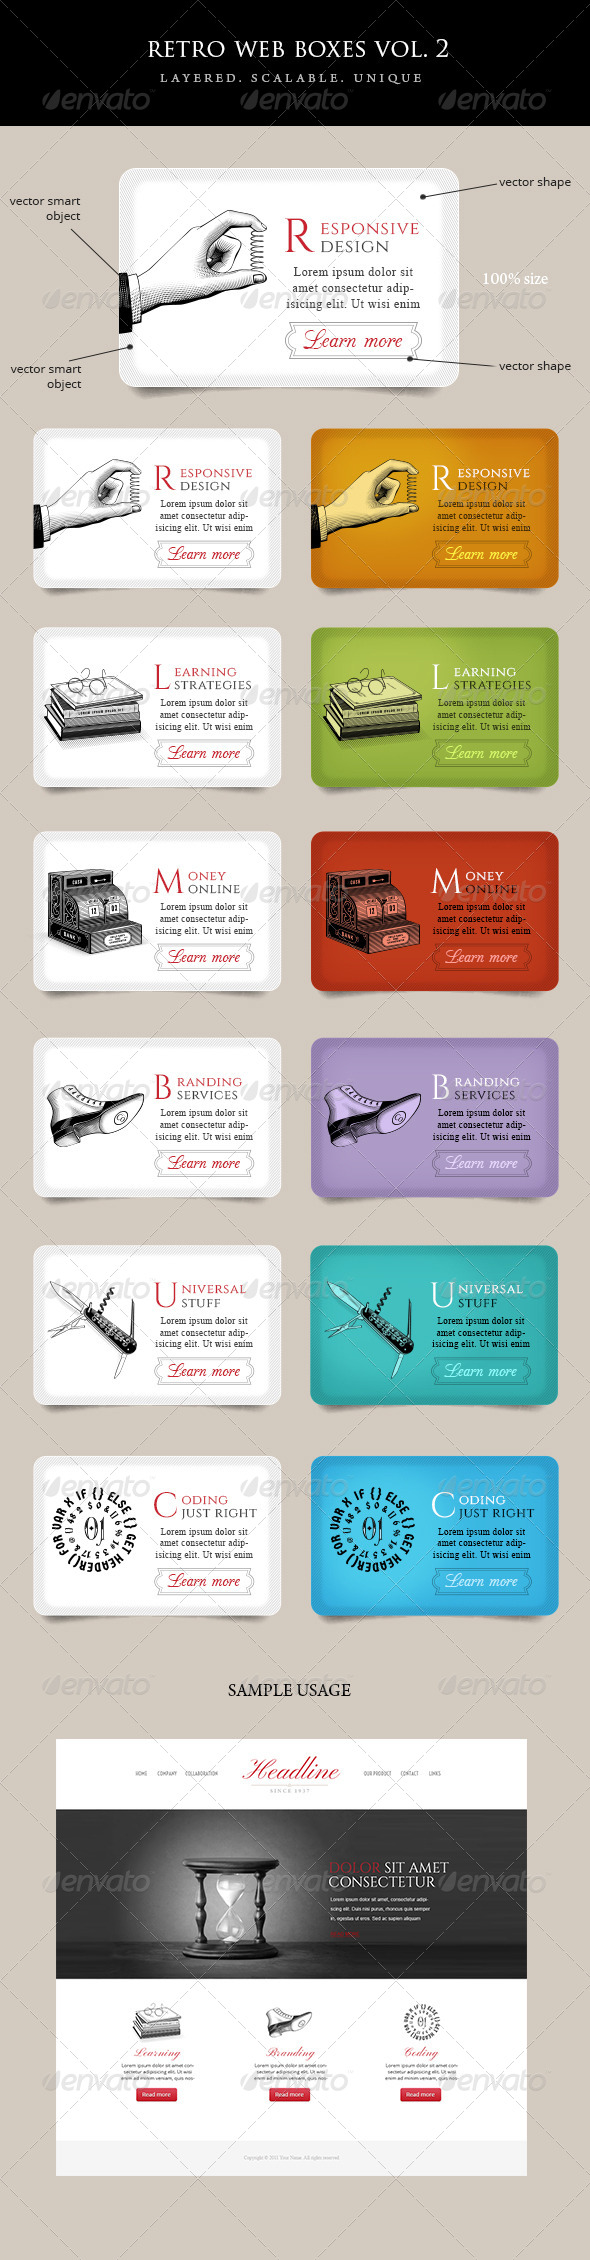 GraphicRiver Vintage Web Boxes with Icons Vol 2 5366240